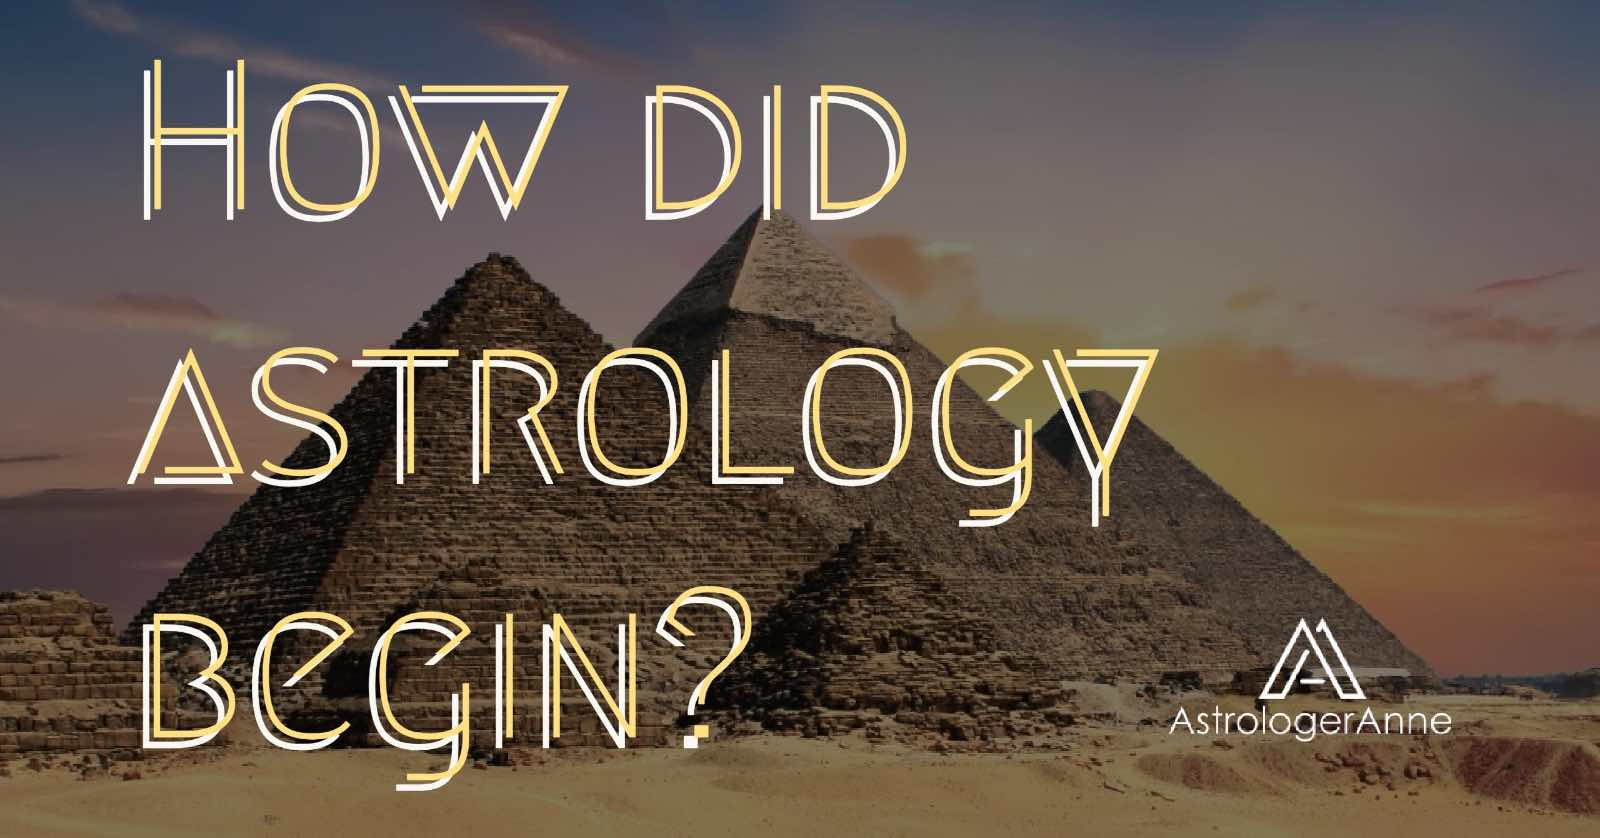 How did astrology begin pyramid graphic